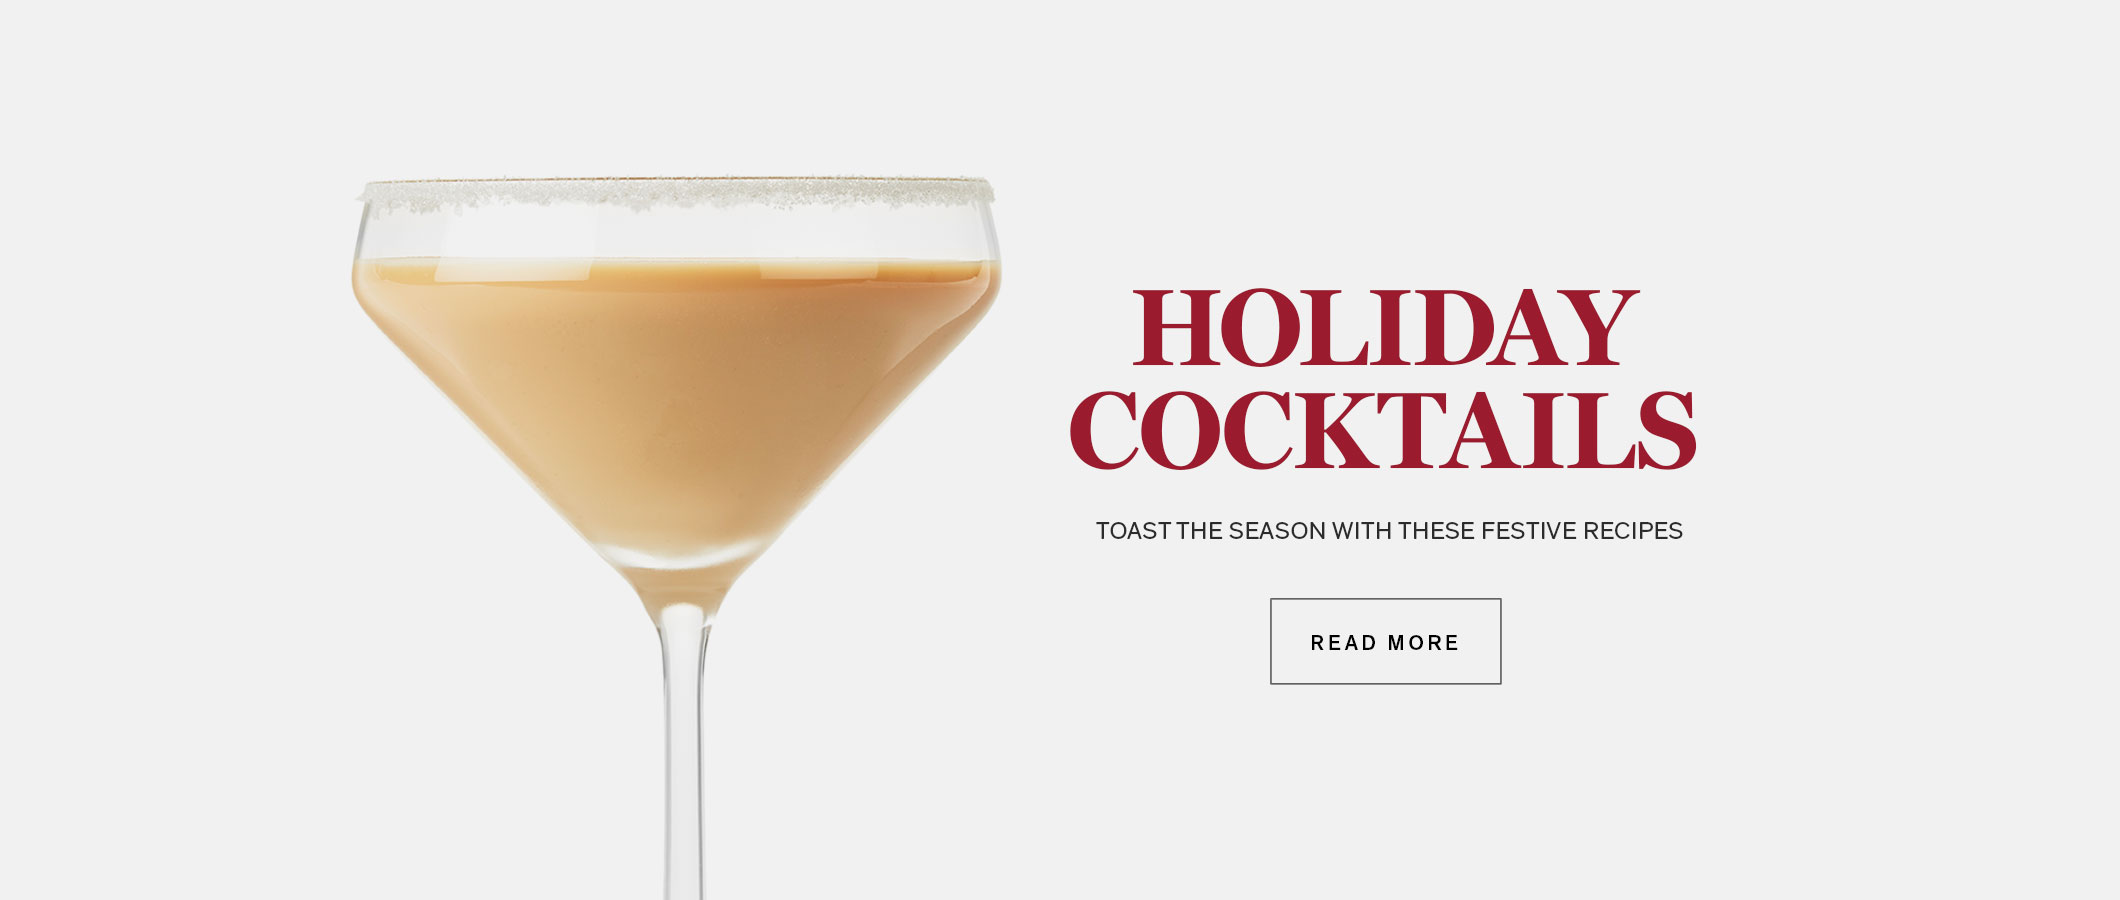 Holiday Cocktails. Toast the Season with These Festive Recipes. READ MORE